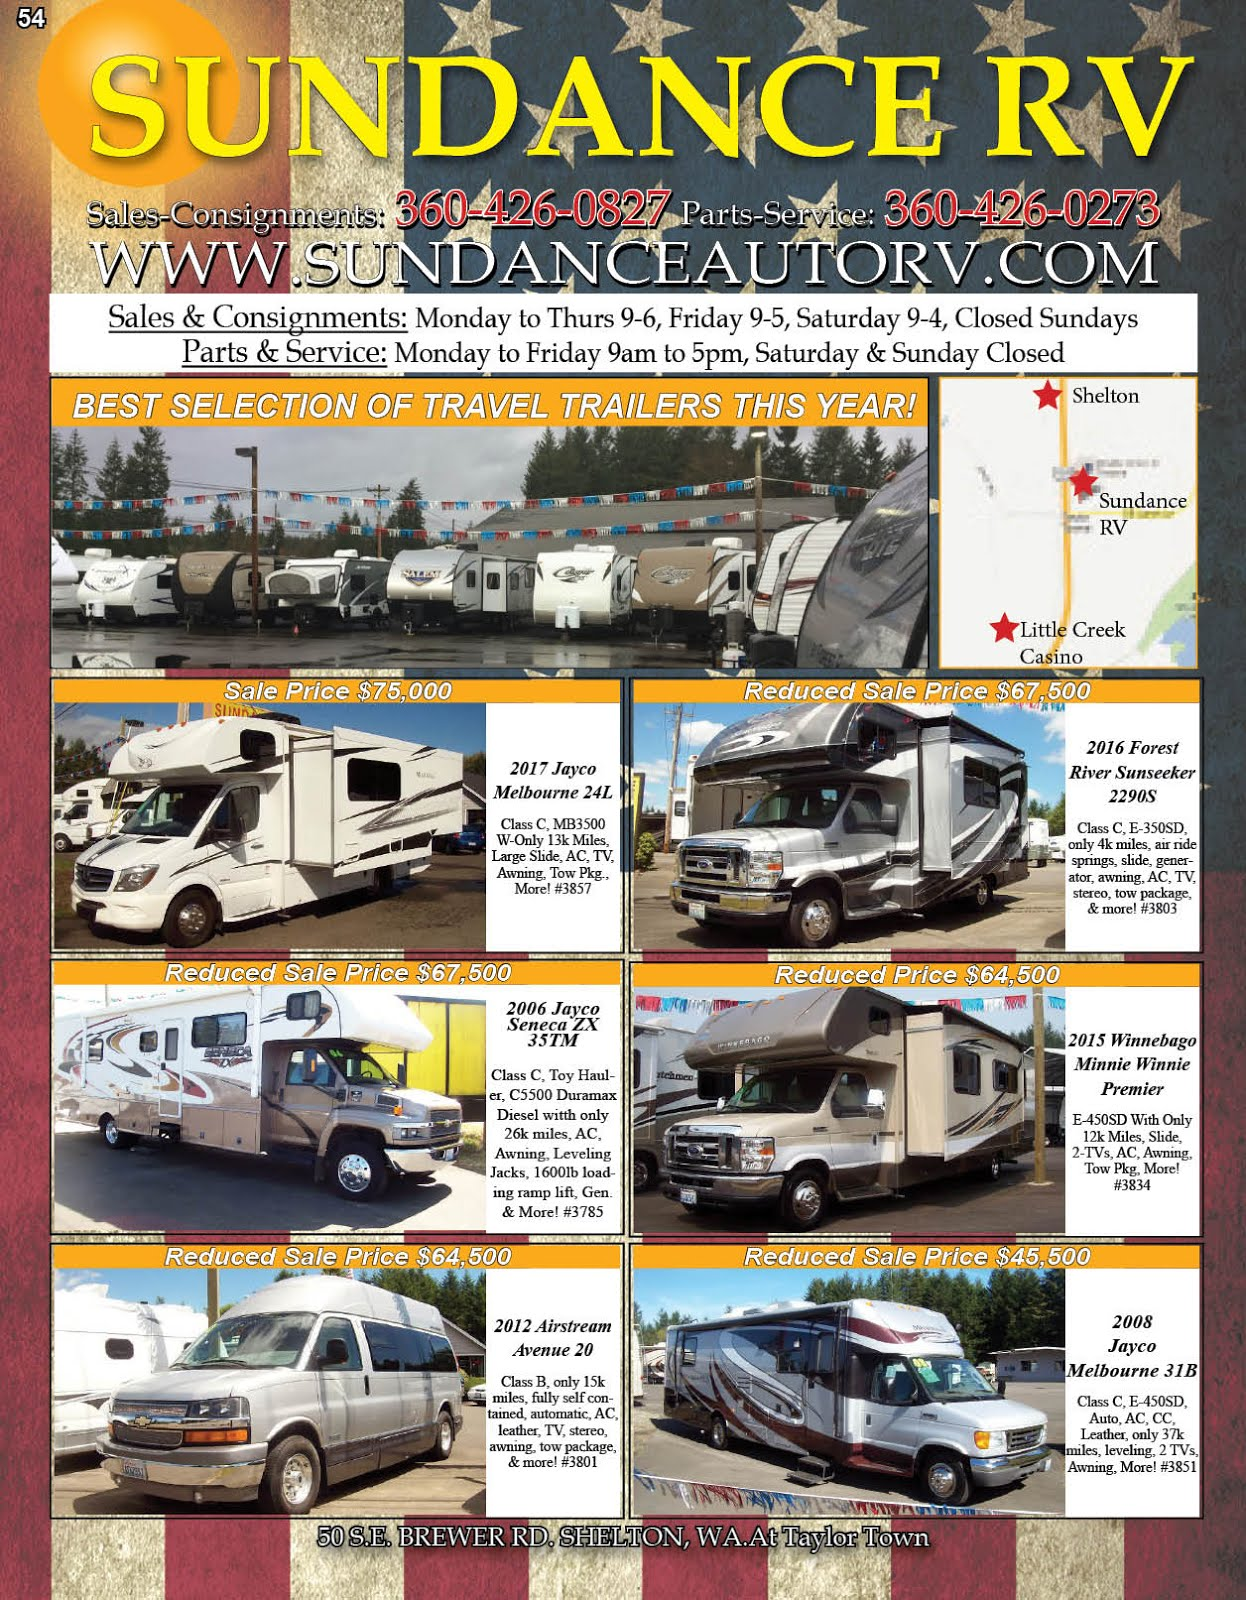 Sundance Auto & RV Center Sales & Service, Parts & Consignments